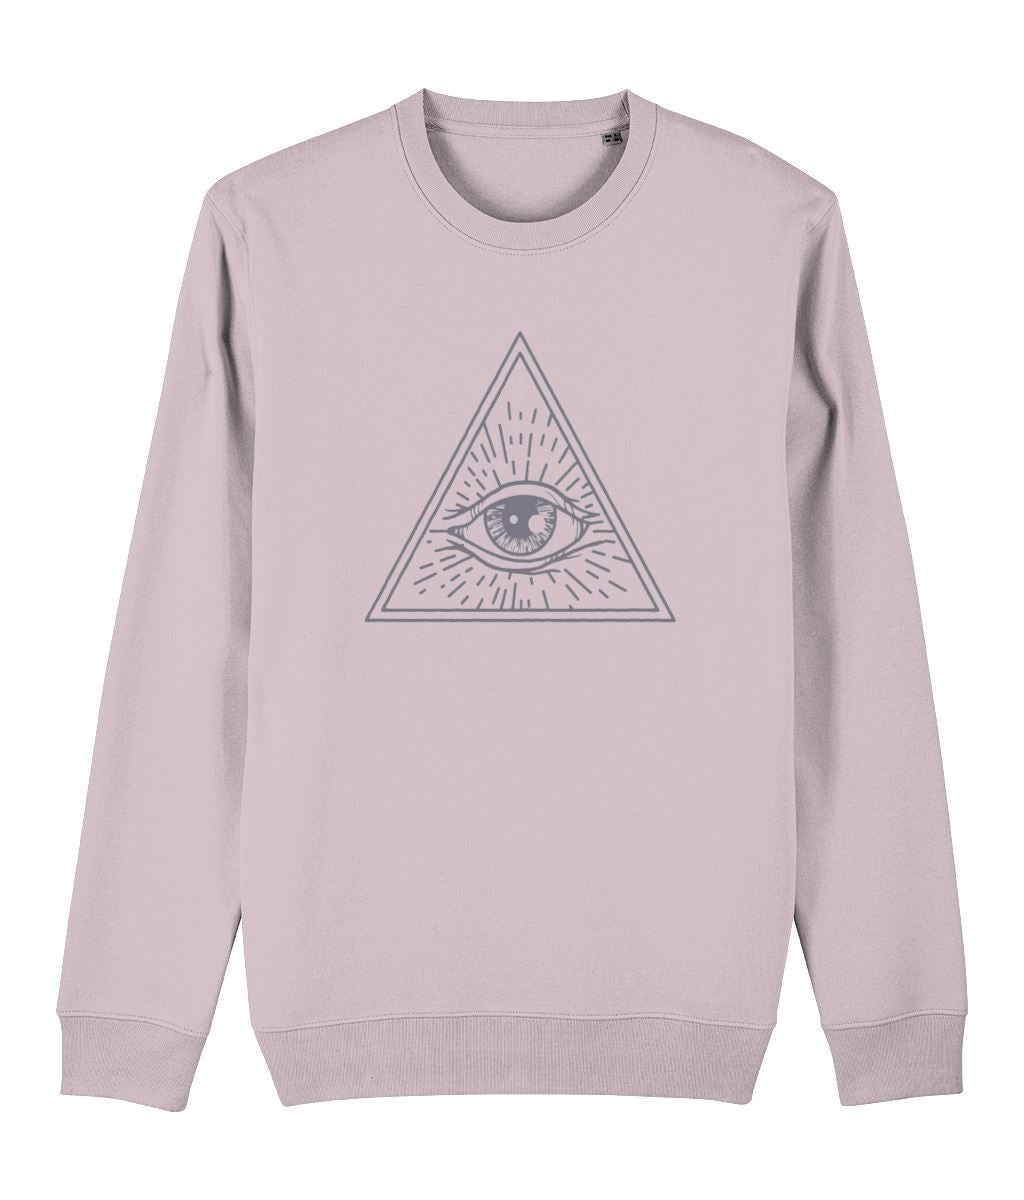 Eye of Providence I Sweatshirt Clothing IndianBelieves Cotton Pink X-Small